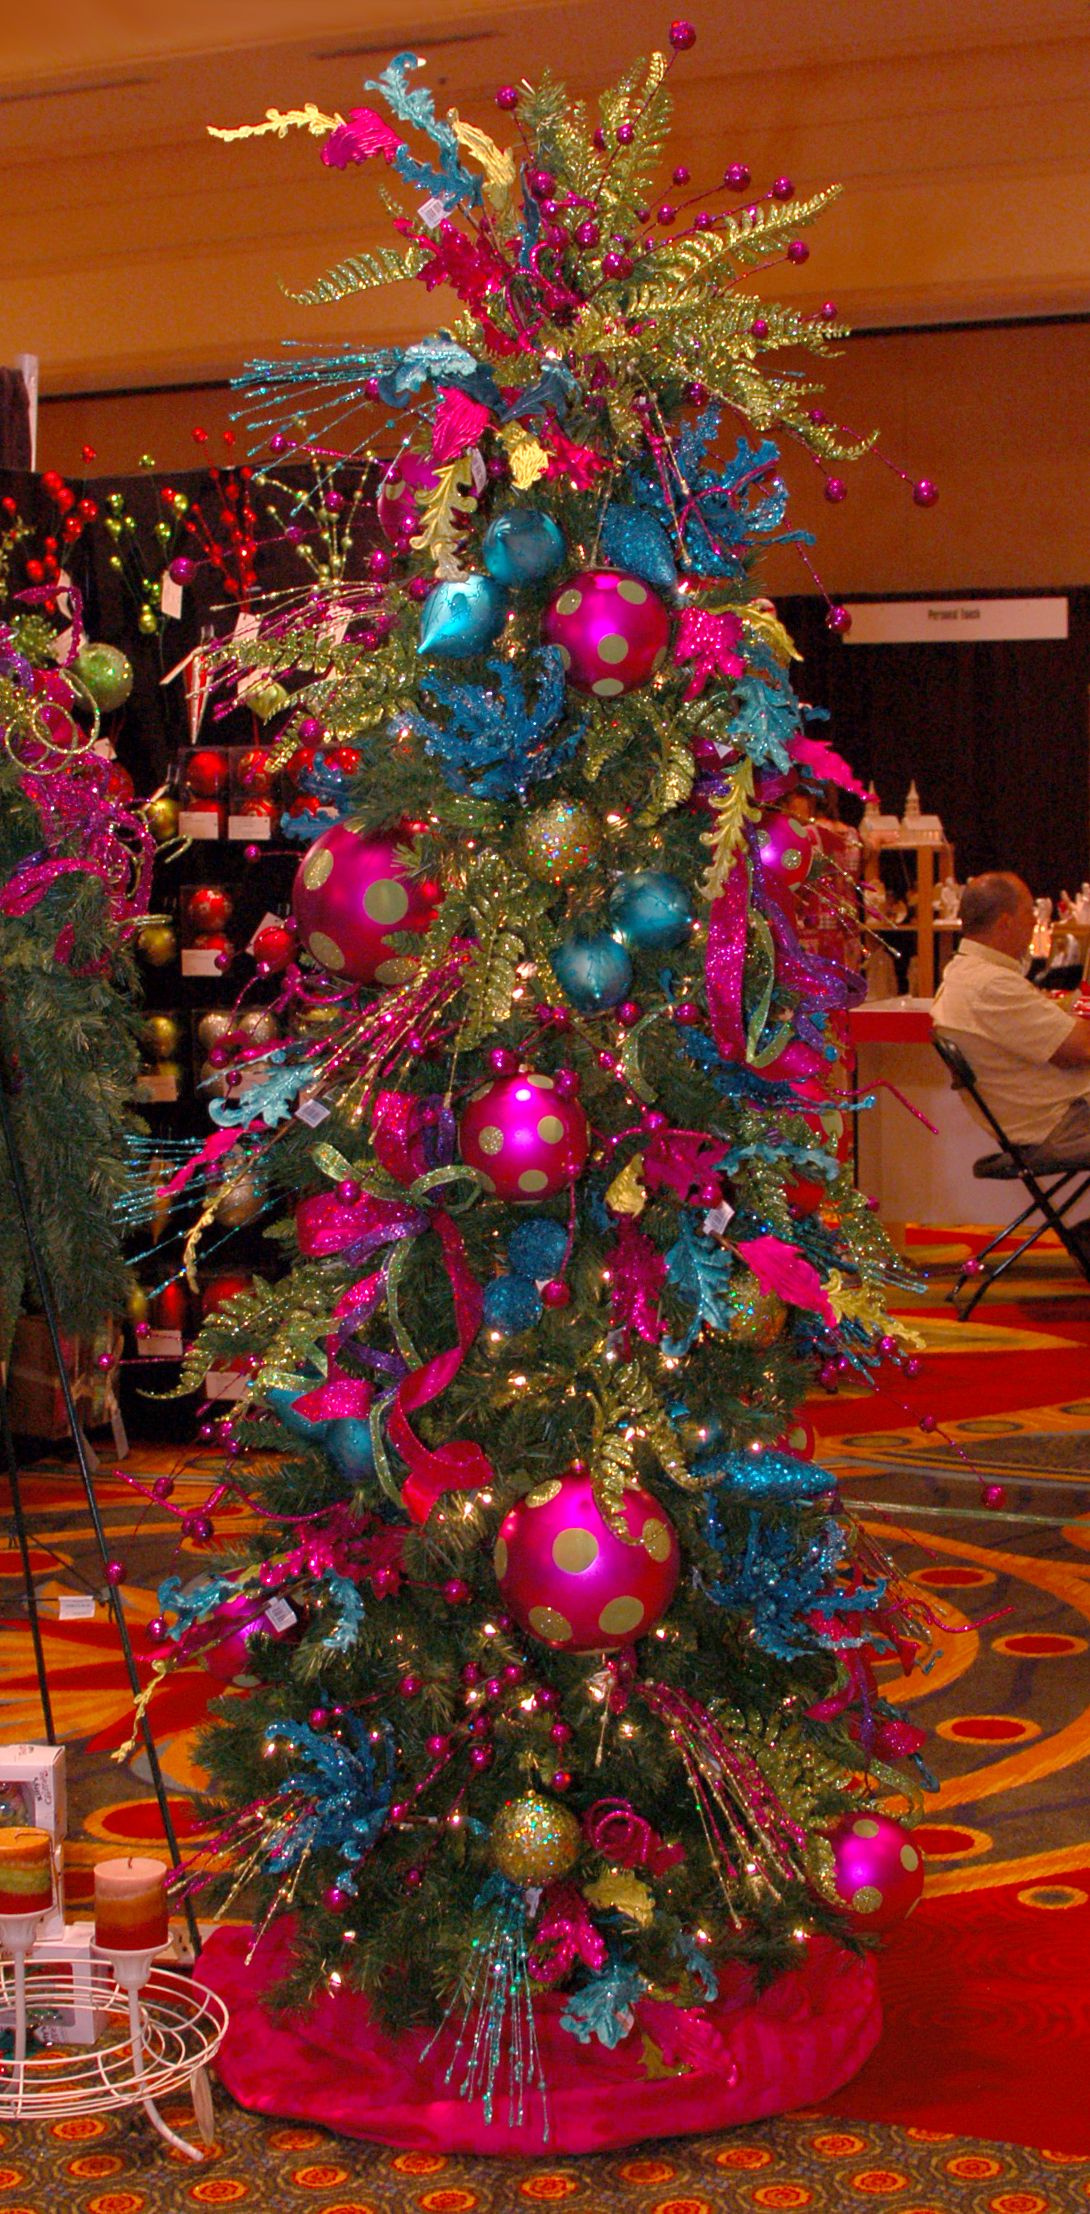 Colorful Christmas Tree Decorations Ideas Pink Christmas Tree Gold Christmas Tree Christmas Decorations